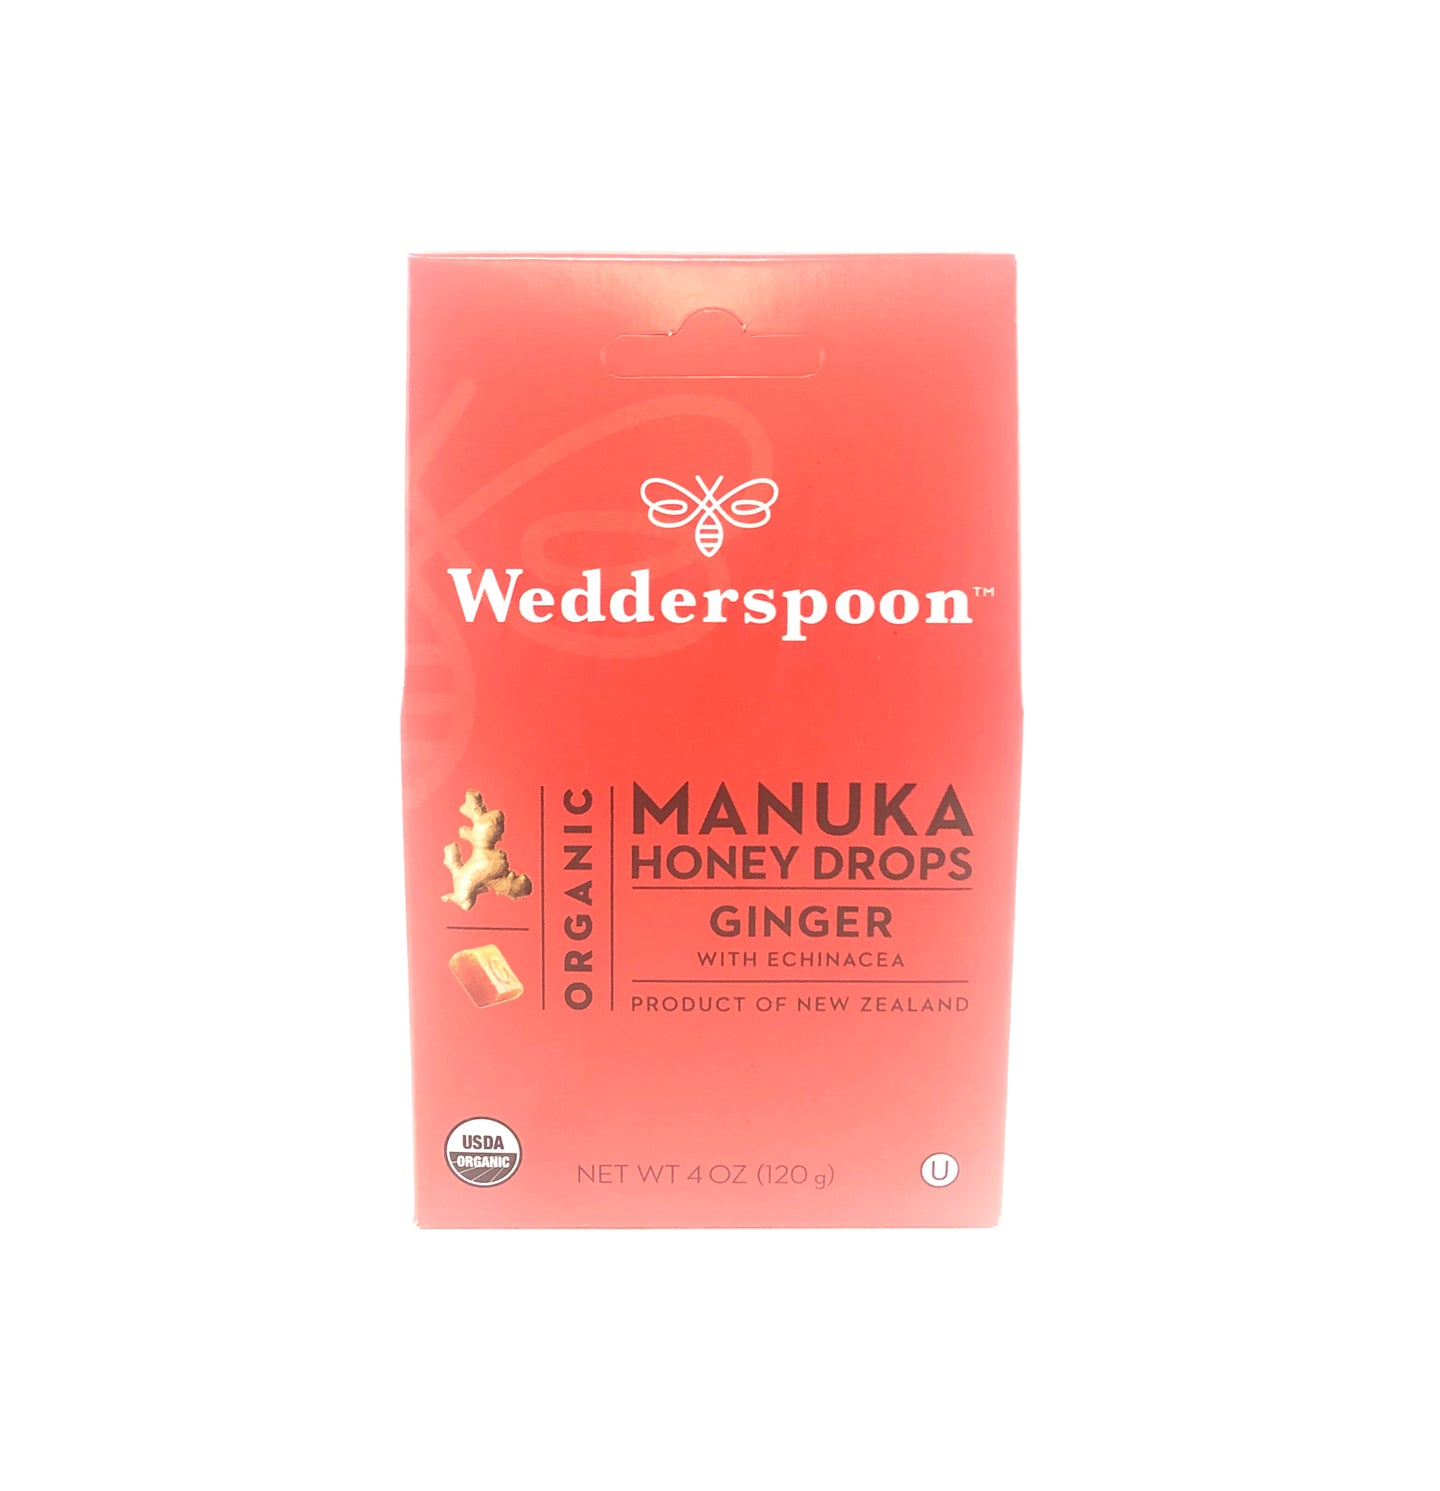 Wedderspoon Manuka Honey Drops Ginger